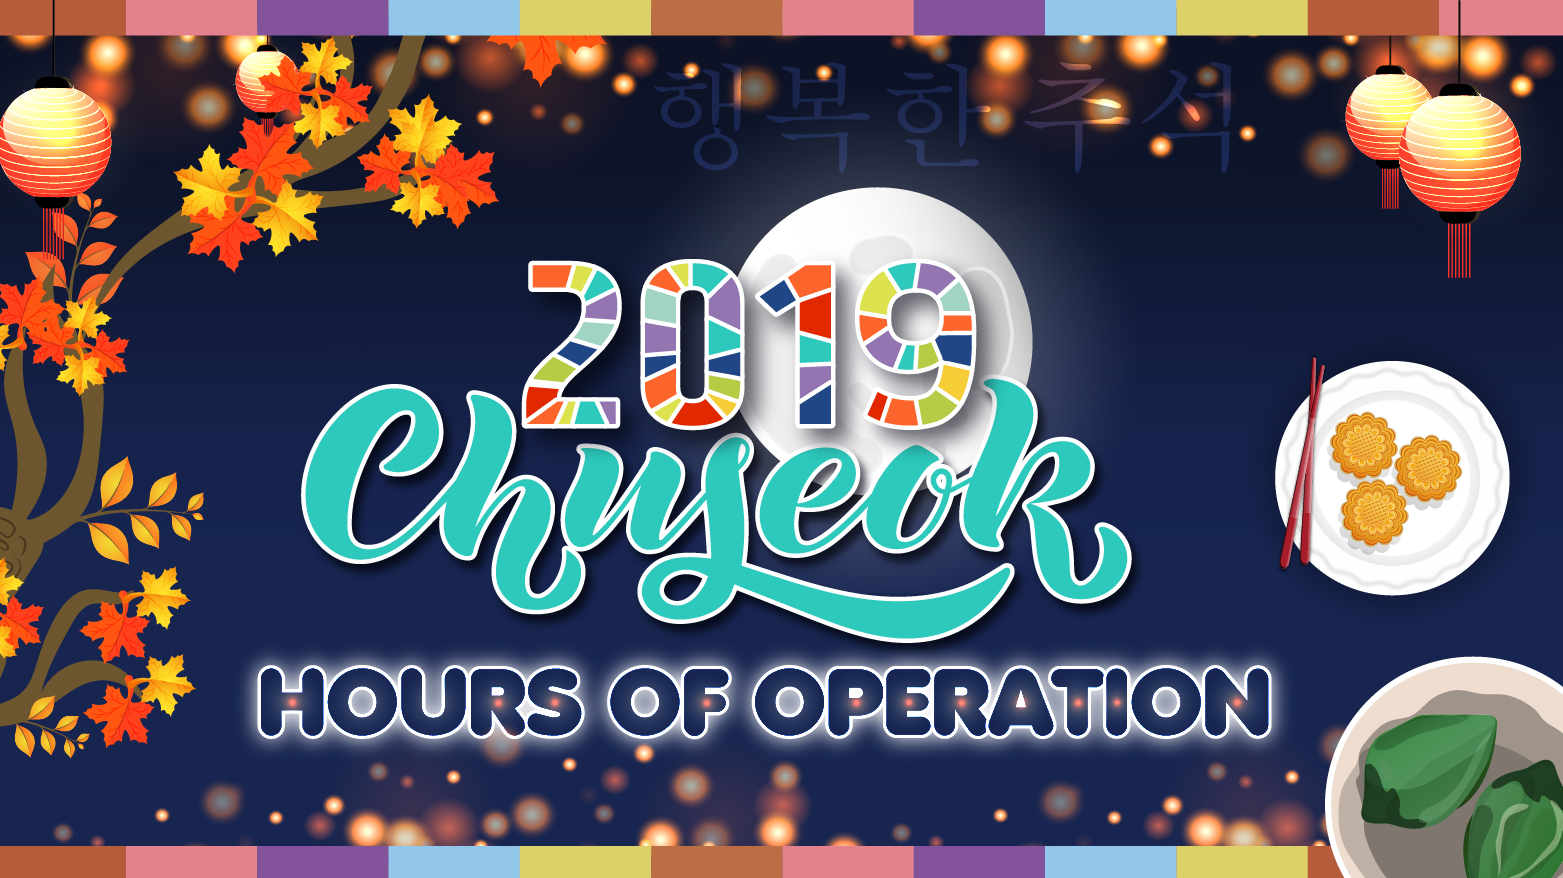 2019 Chuseok Holiday Hours of Operation